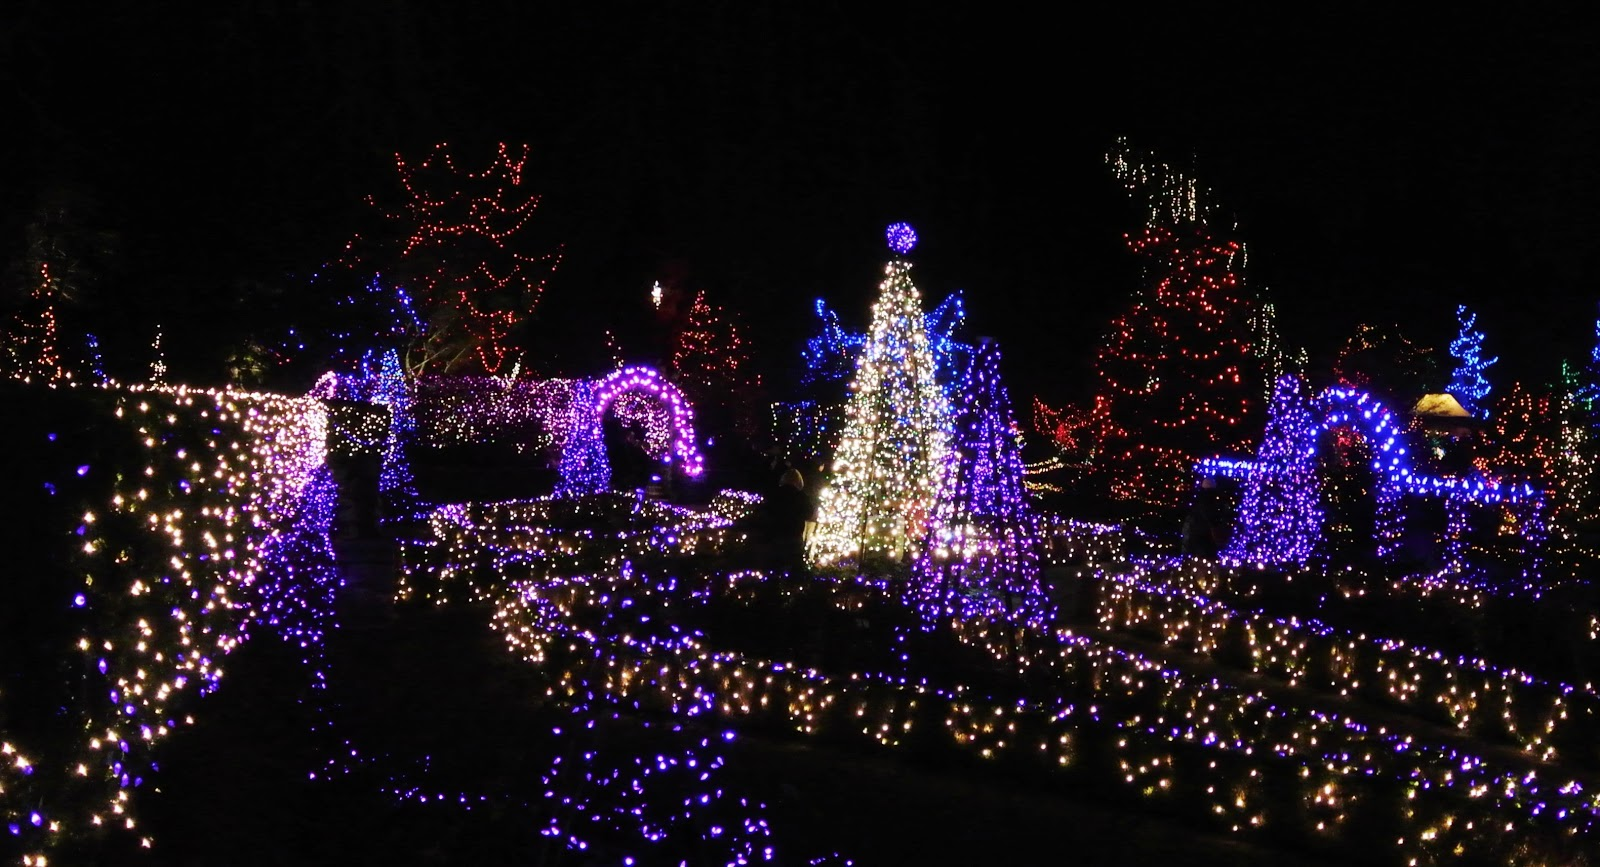 vivian - in stitches: Christmas Lights, Van Dusen Gardens